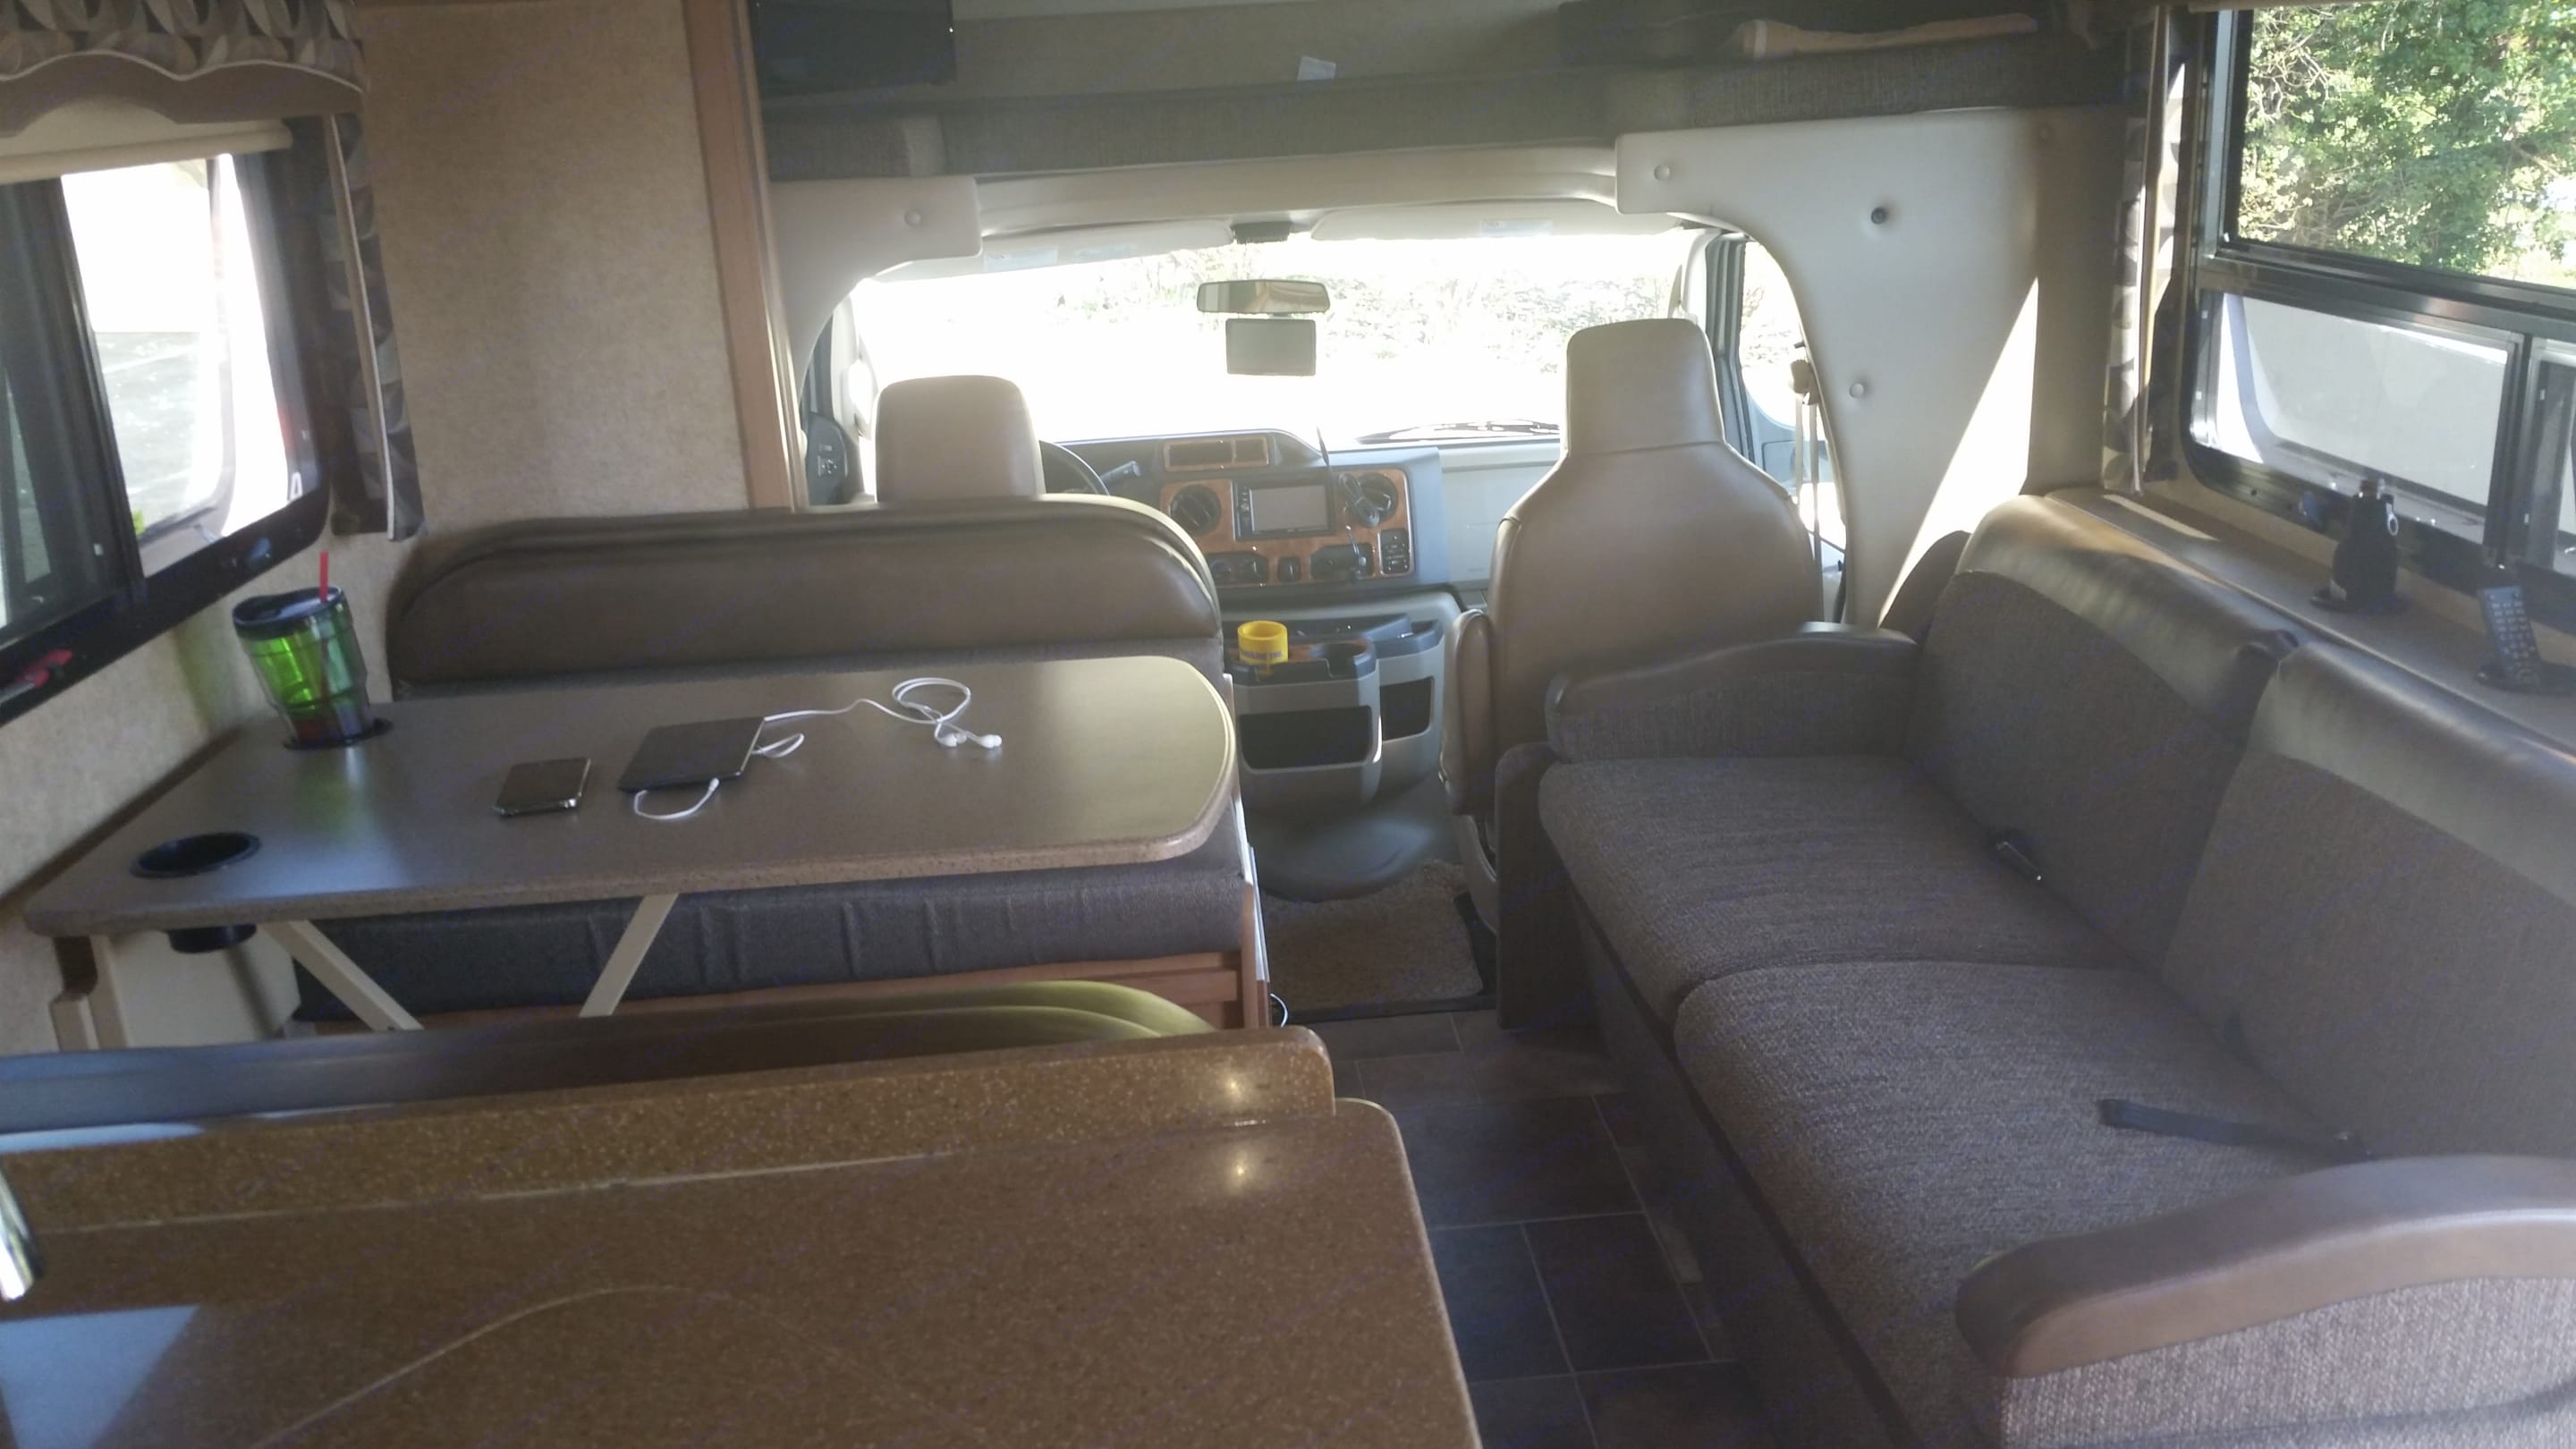 Couch folds out to become bed. Thor Motor Coach Chateau 2016